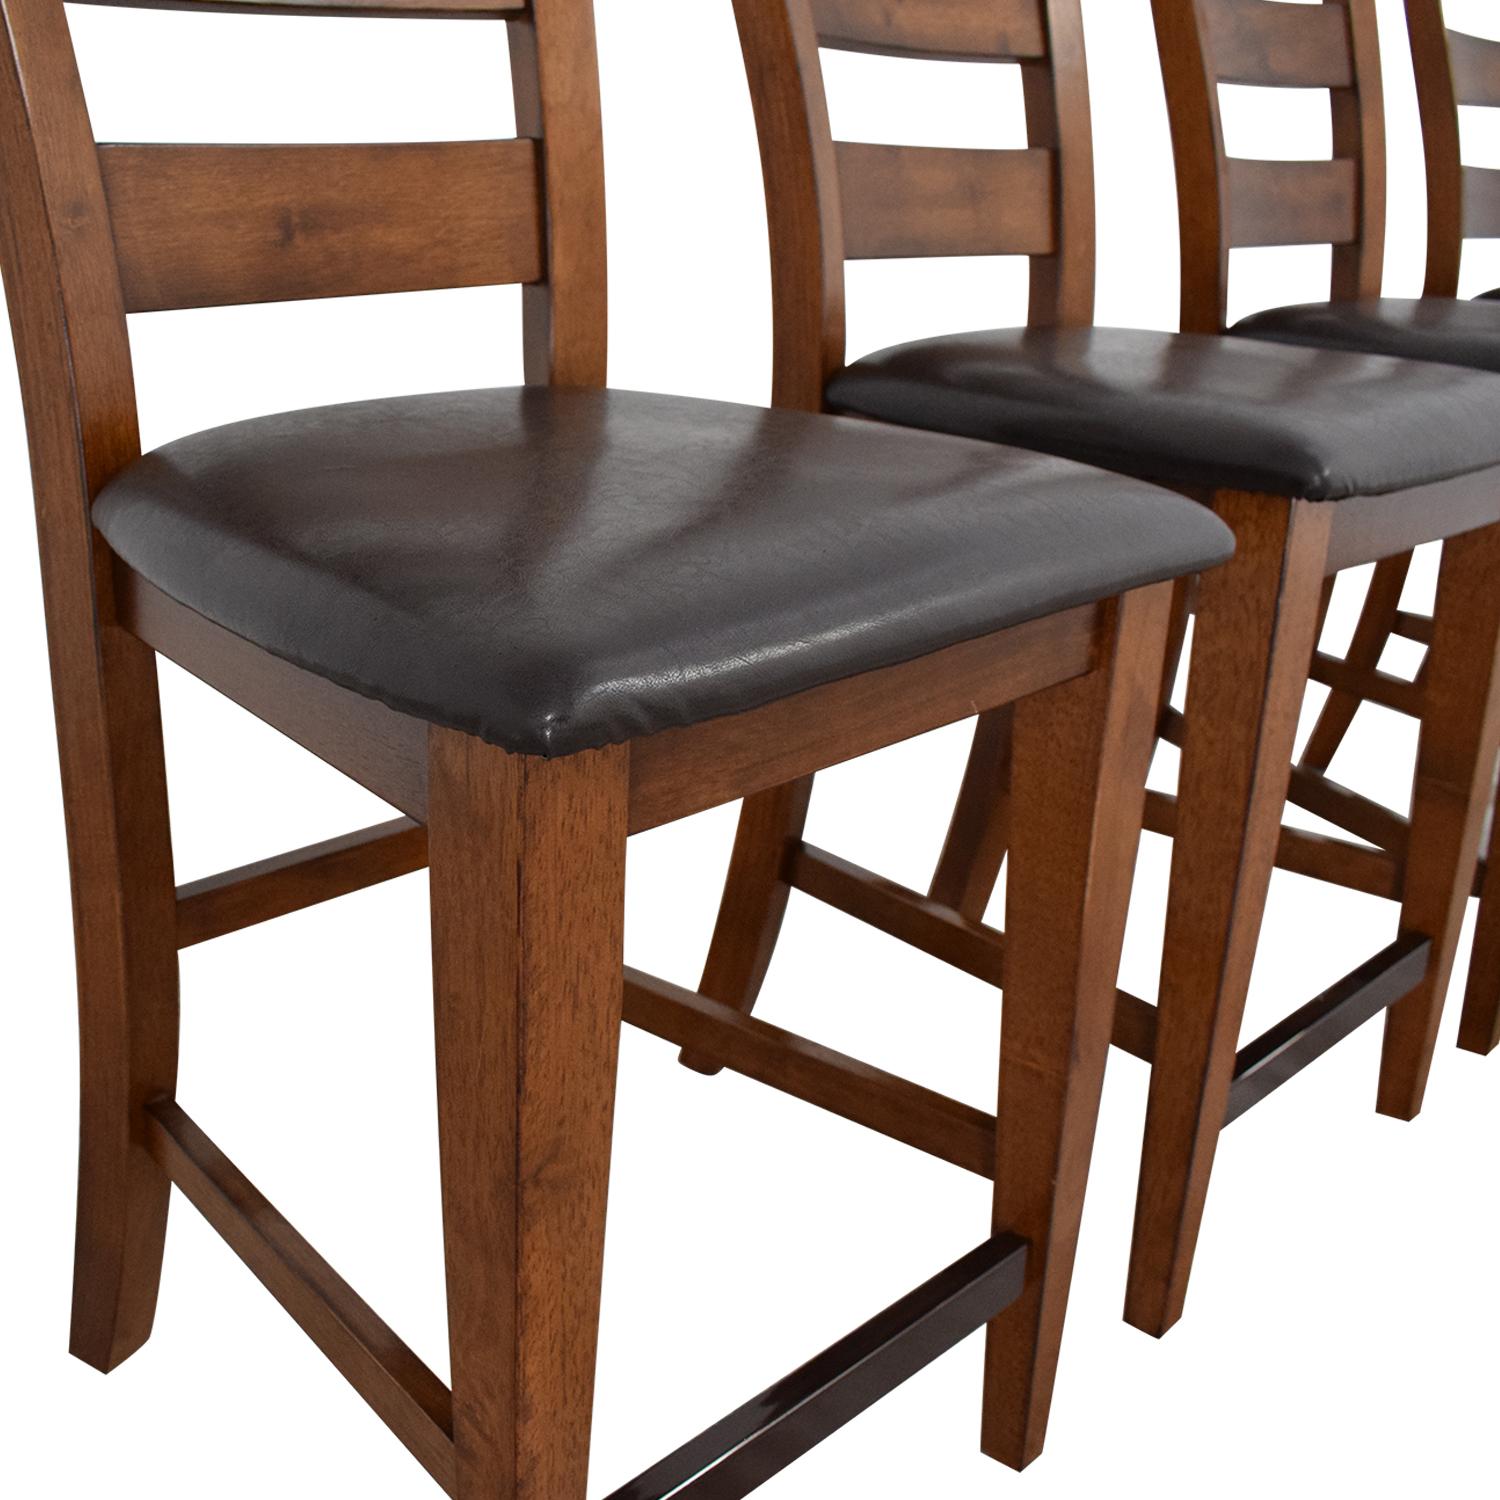 American Signature American Signature Ladder Back Dining Chairs ct